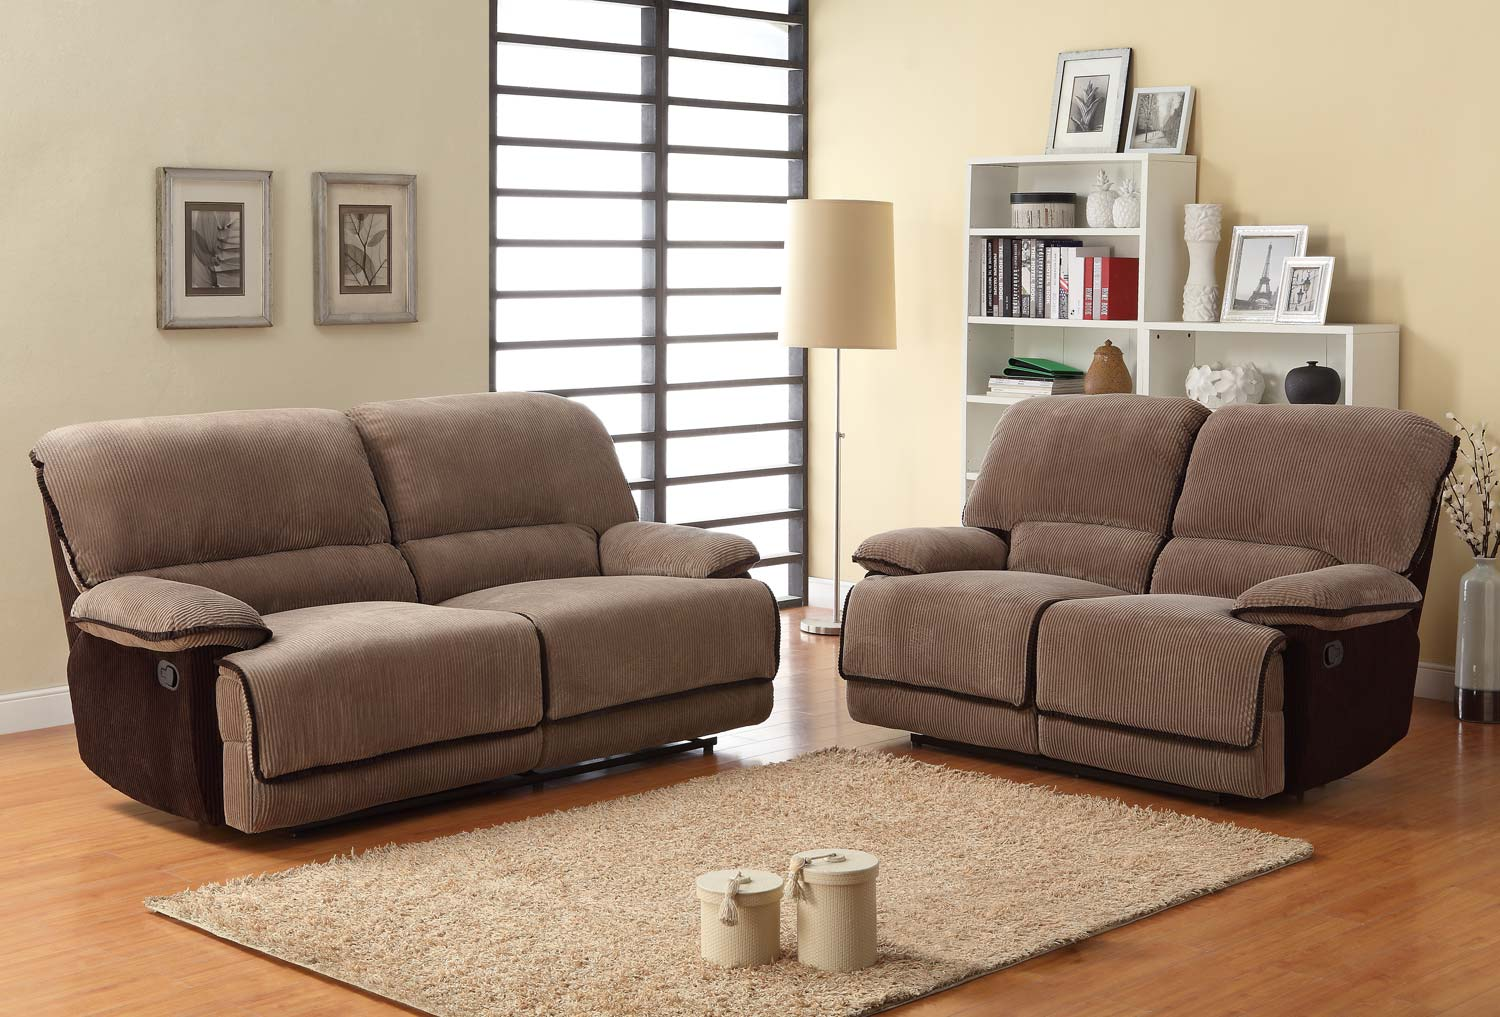 Homelegance Grantham Reclining Sofa Set - Brown - Corduroy U9717-3